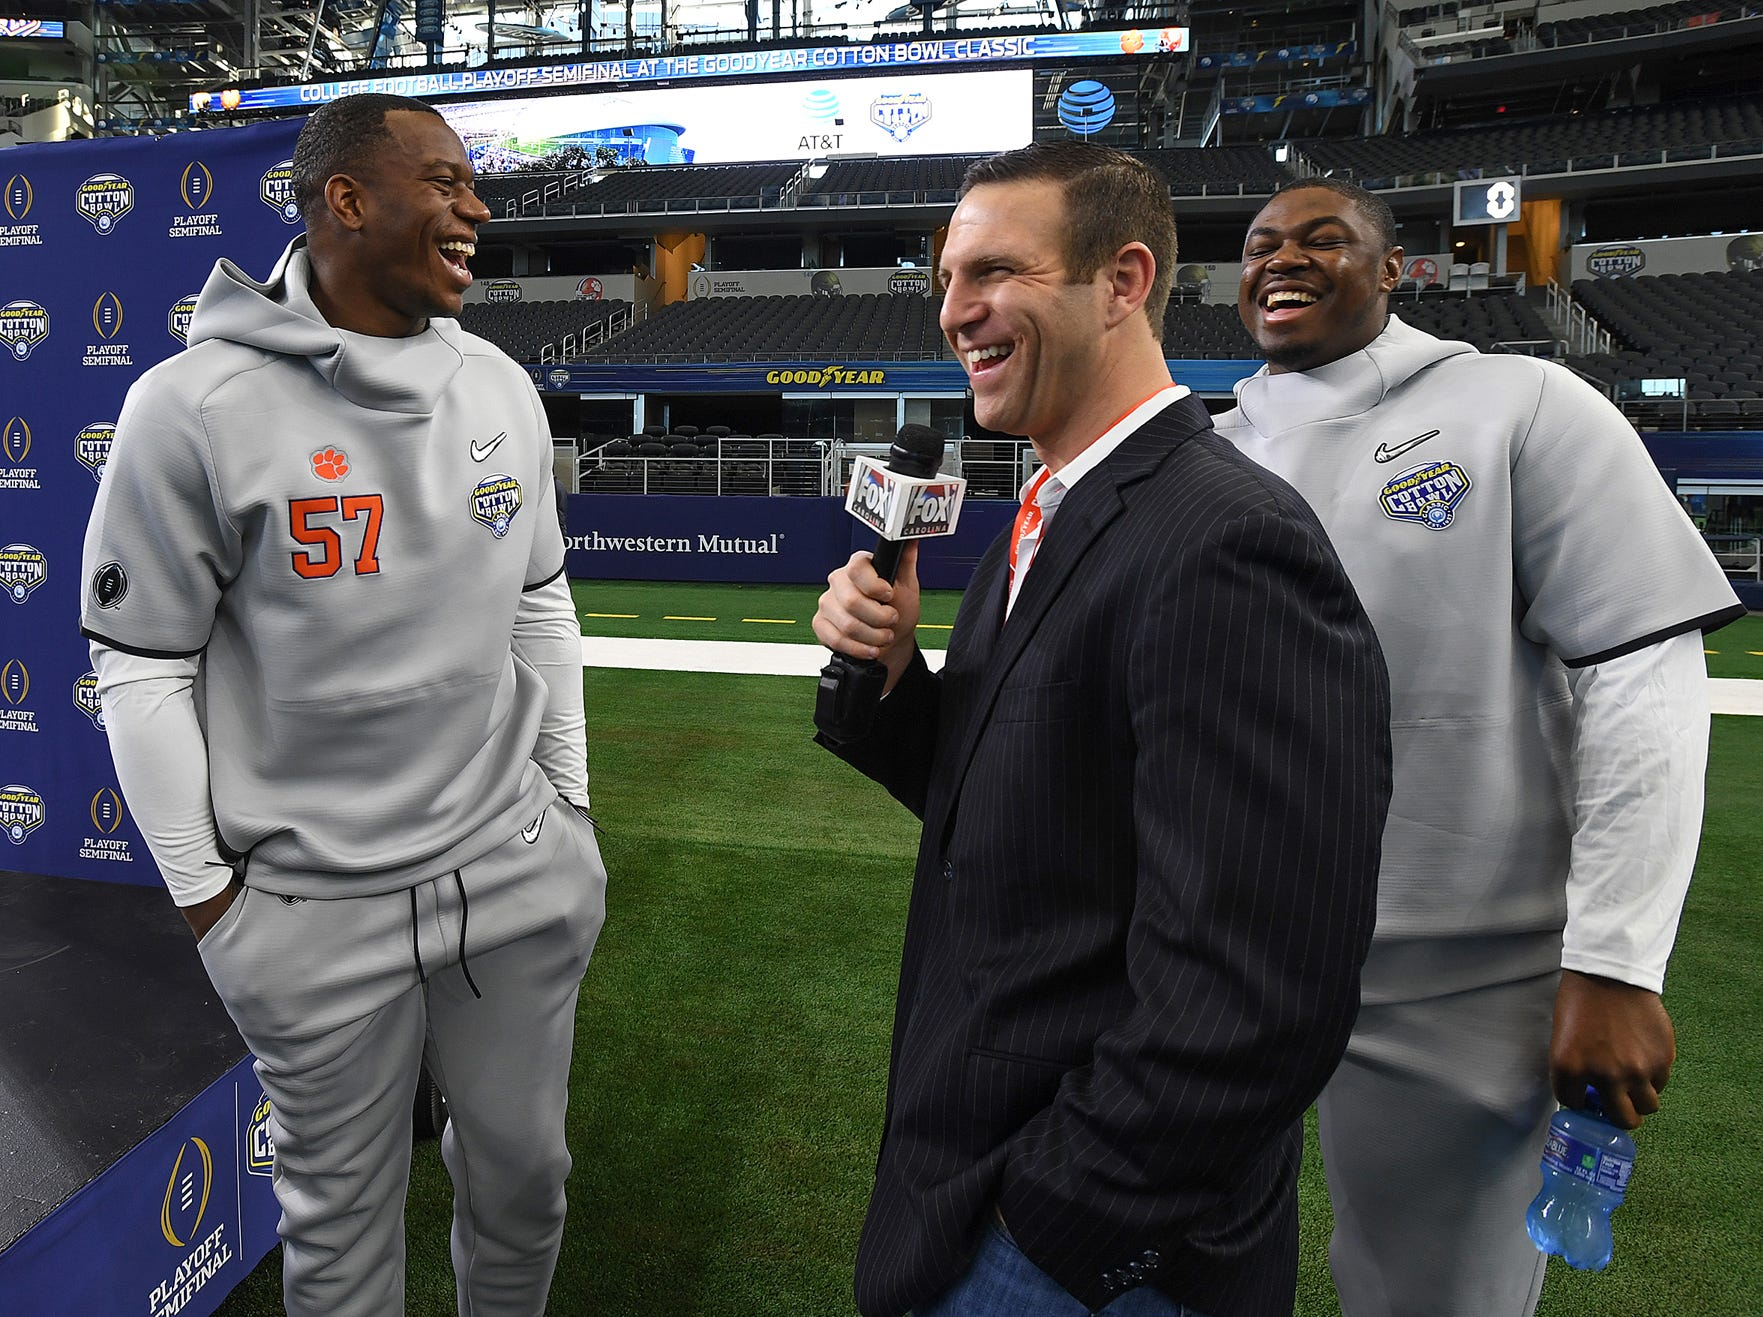 Clemson linebacker Tre Lamar, left, and offensive lineman Tremayne Anchrum laugh with reporter Aaron Cheslock during the Tigers Cotton Bowl media day at AT&T Stadium in Arlington, TX Thursday, December 27, 2018.